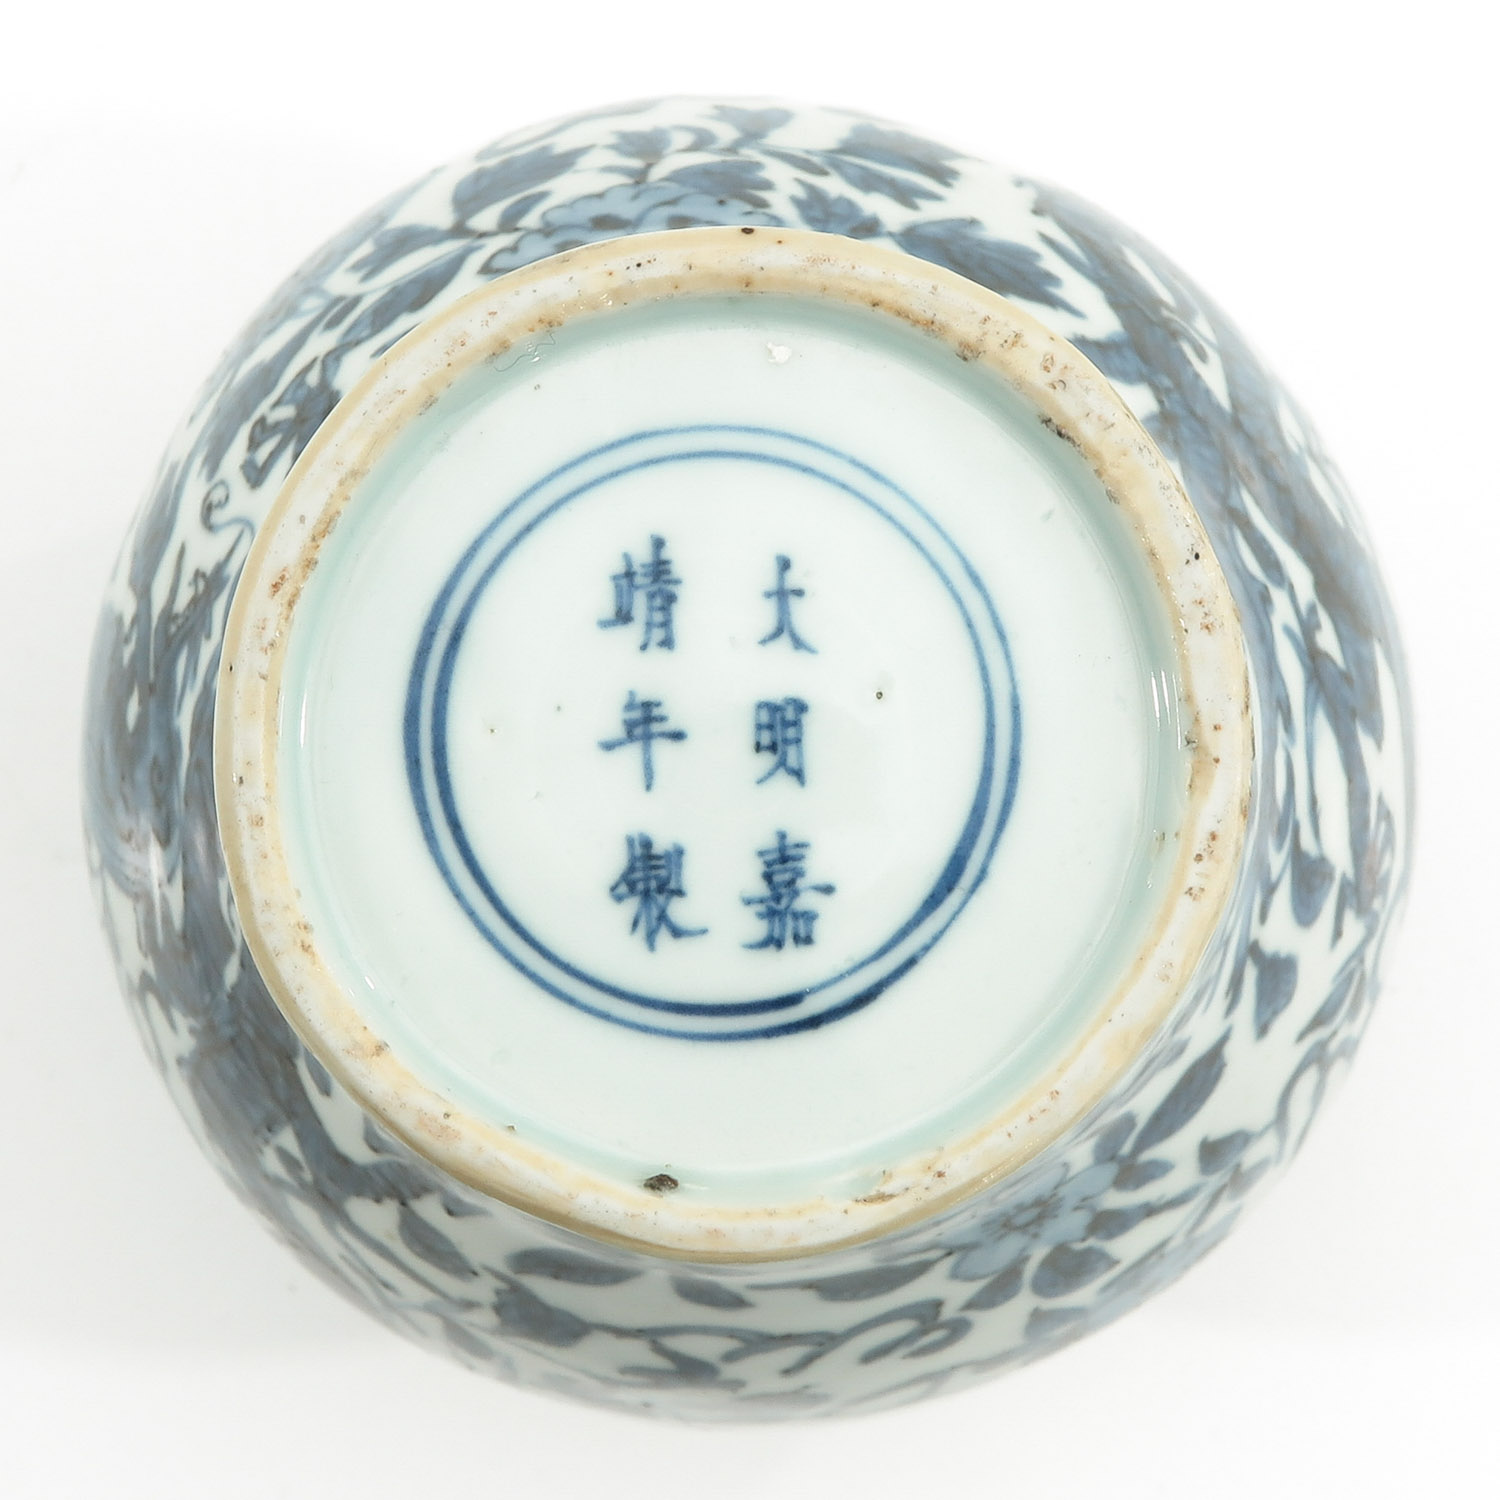 A Blue and White Meiping Vase - Image 6 of 10